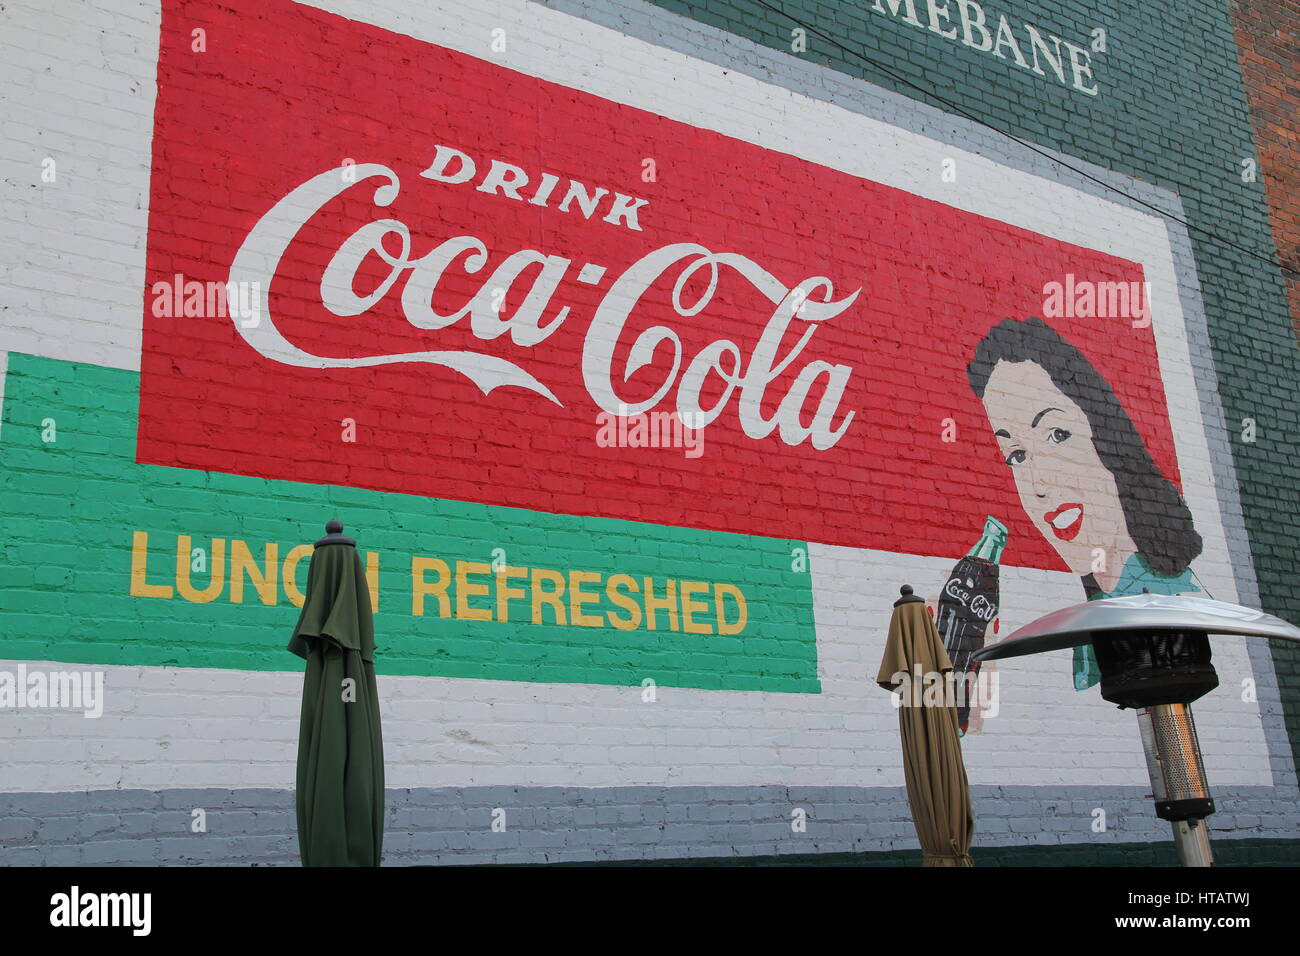 Coca cola sign painted on brick wall - Stock Image